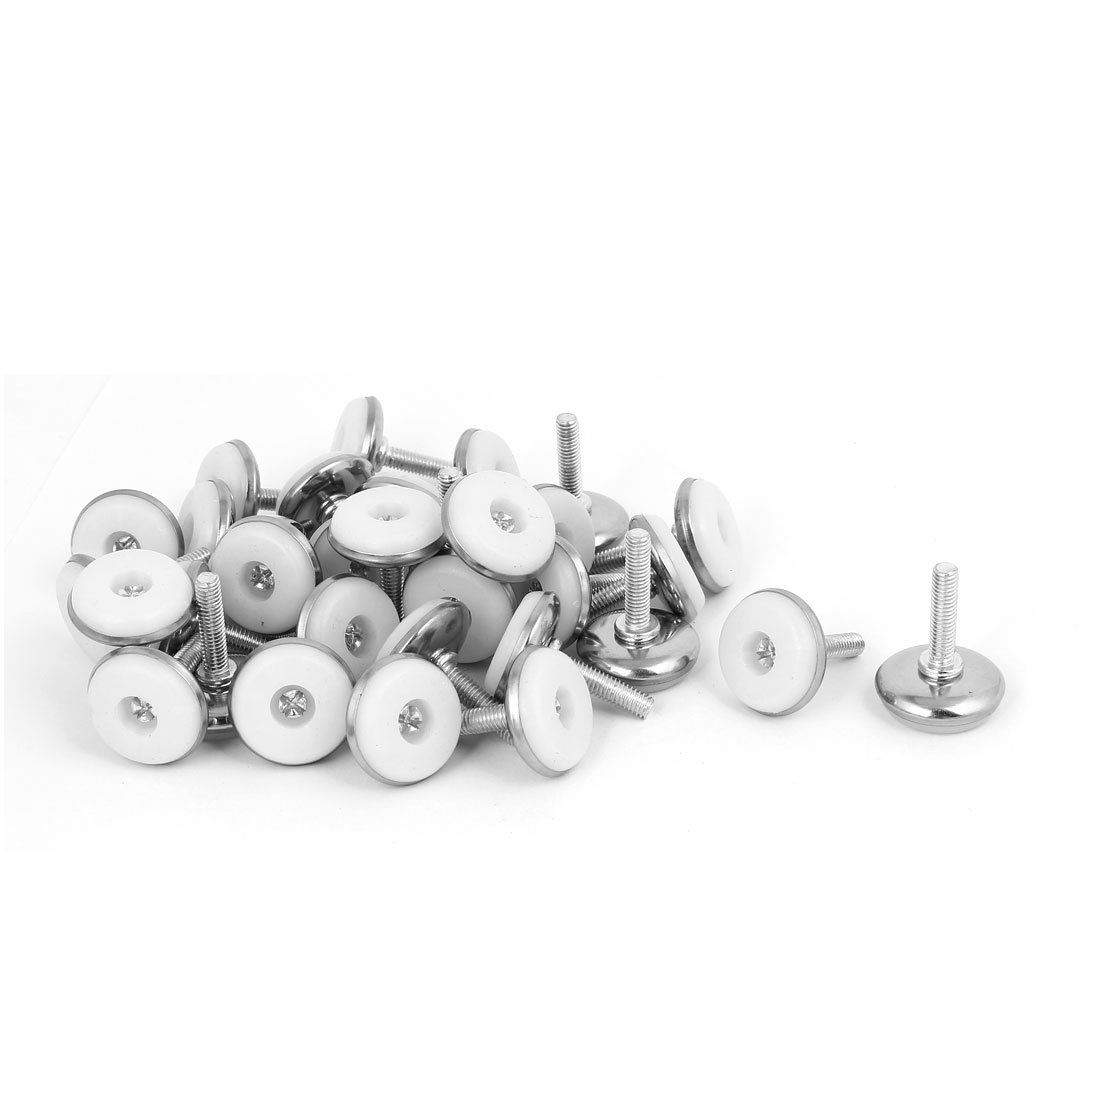 uxcell M6x25mm Plastic Base Adjustable Leveling Glide Foot 30pcs for Cabinet Table Leg